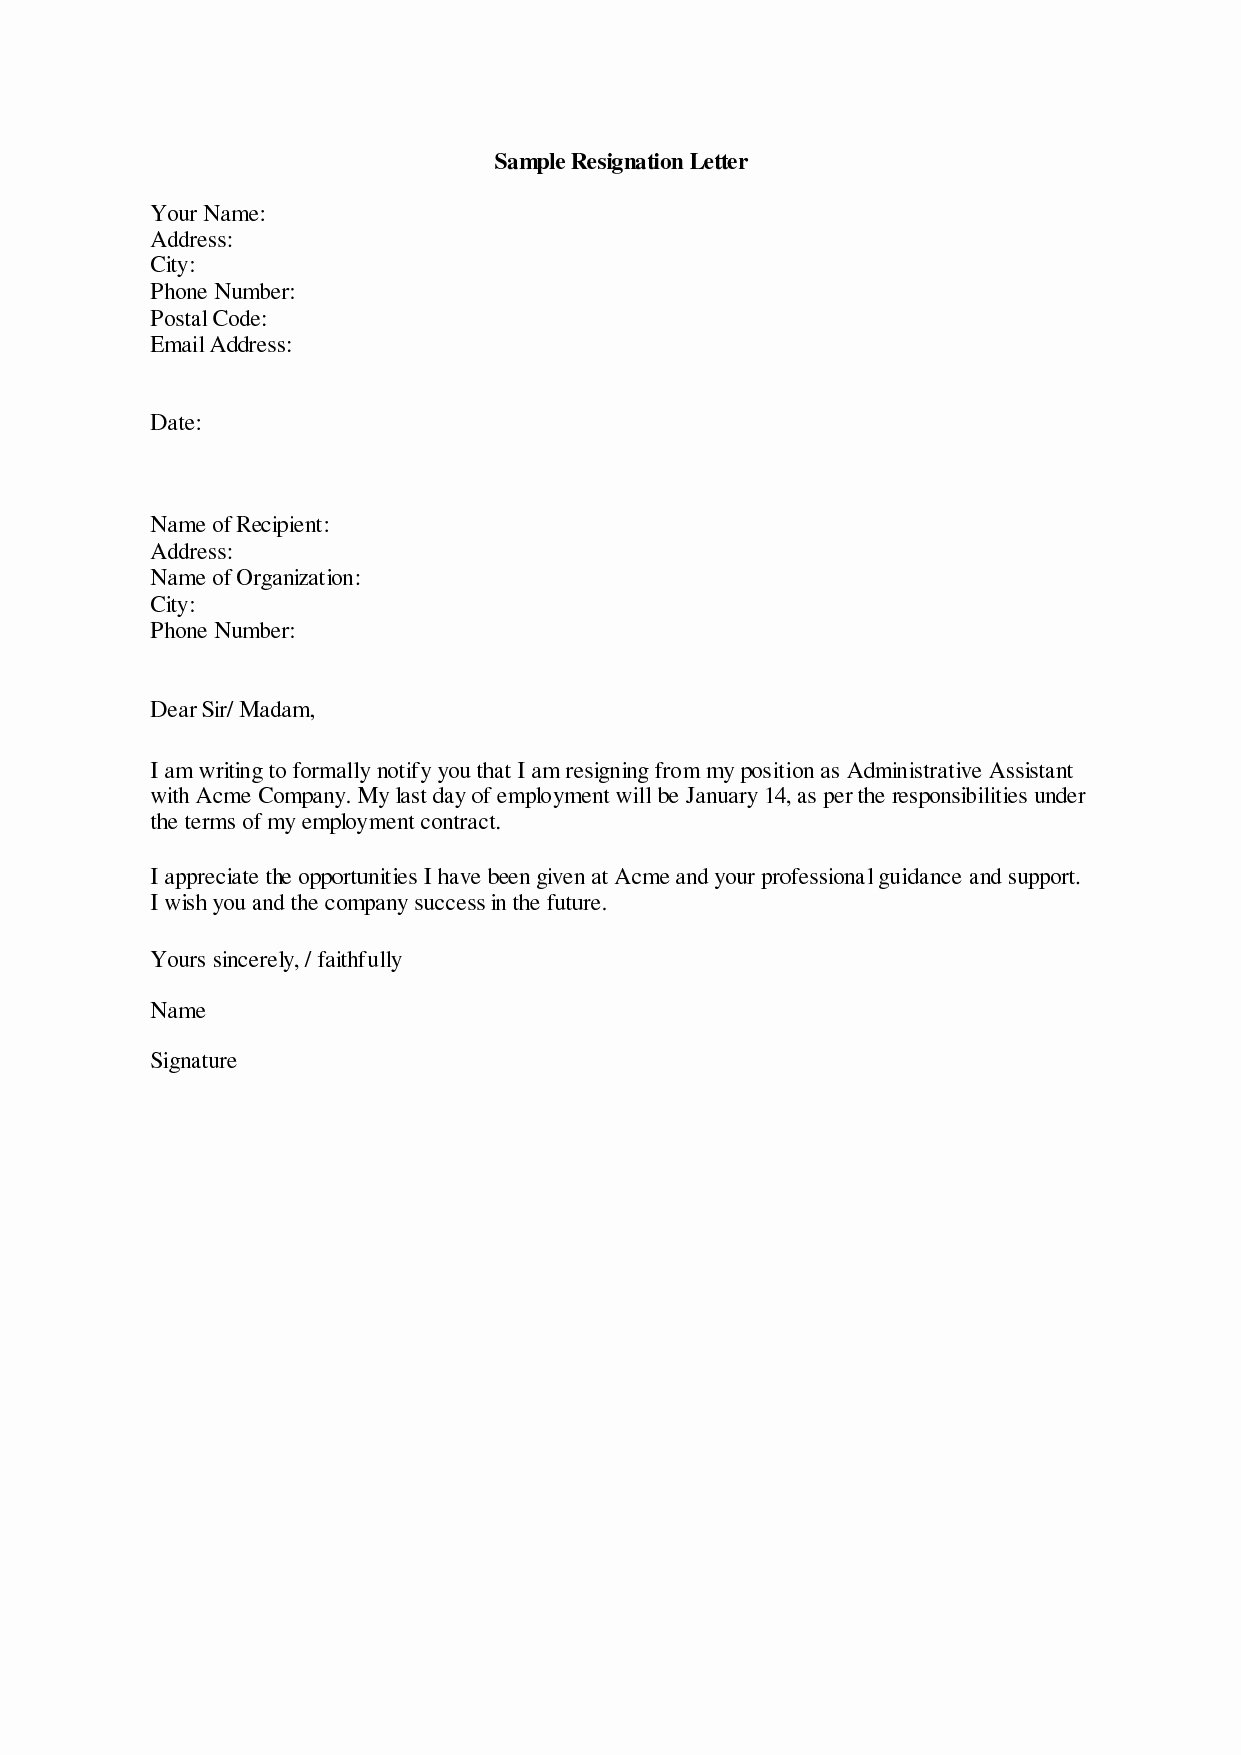 Letter Of Retirement Template Unique Retirement Letter to Employer Template Samples